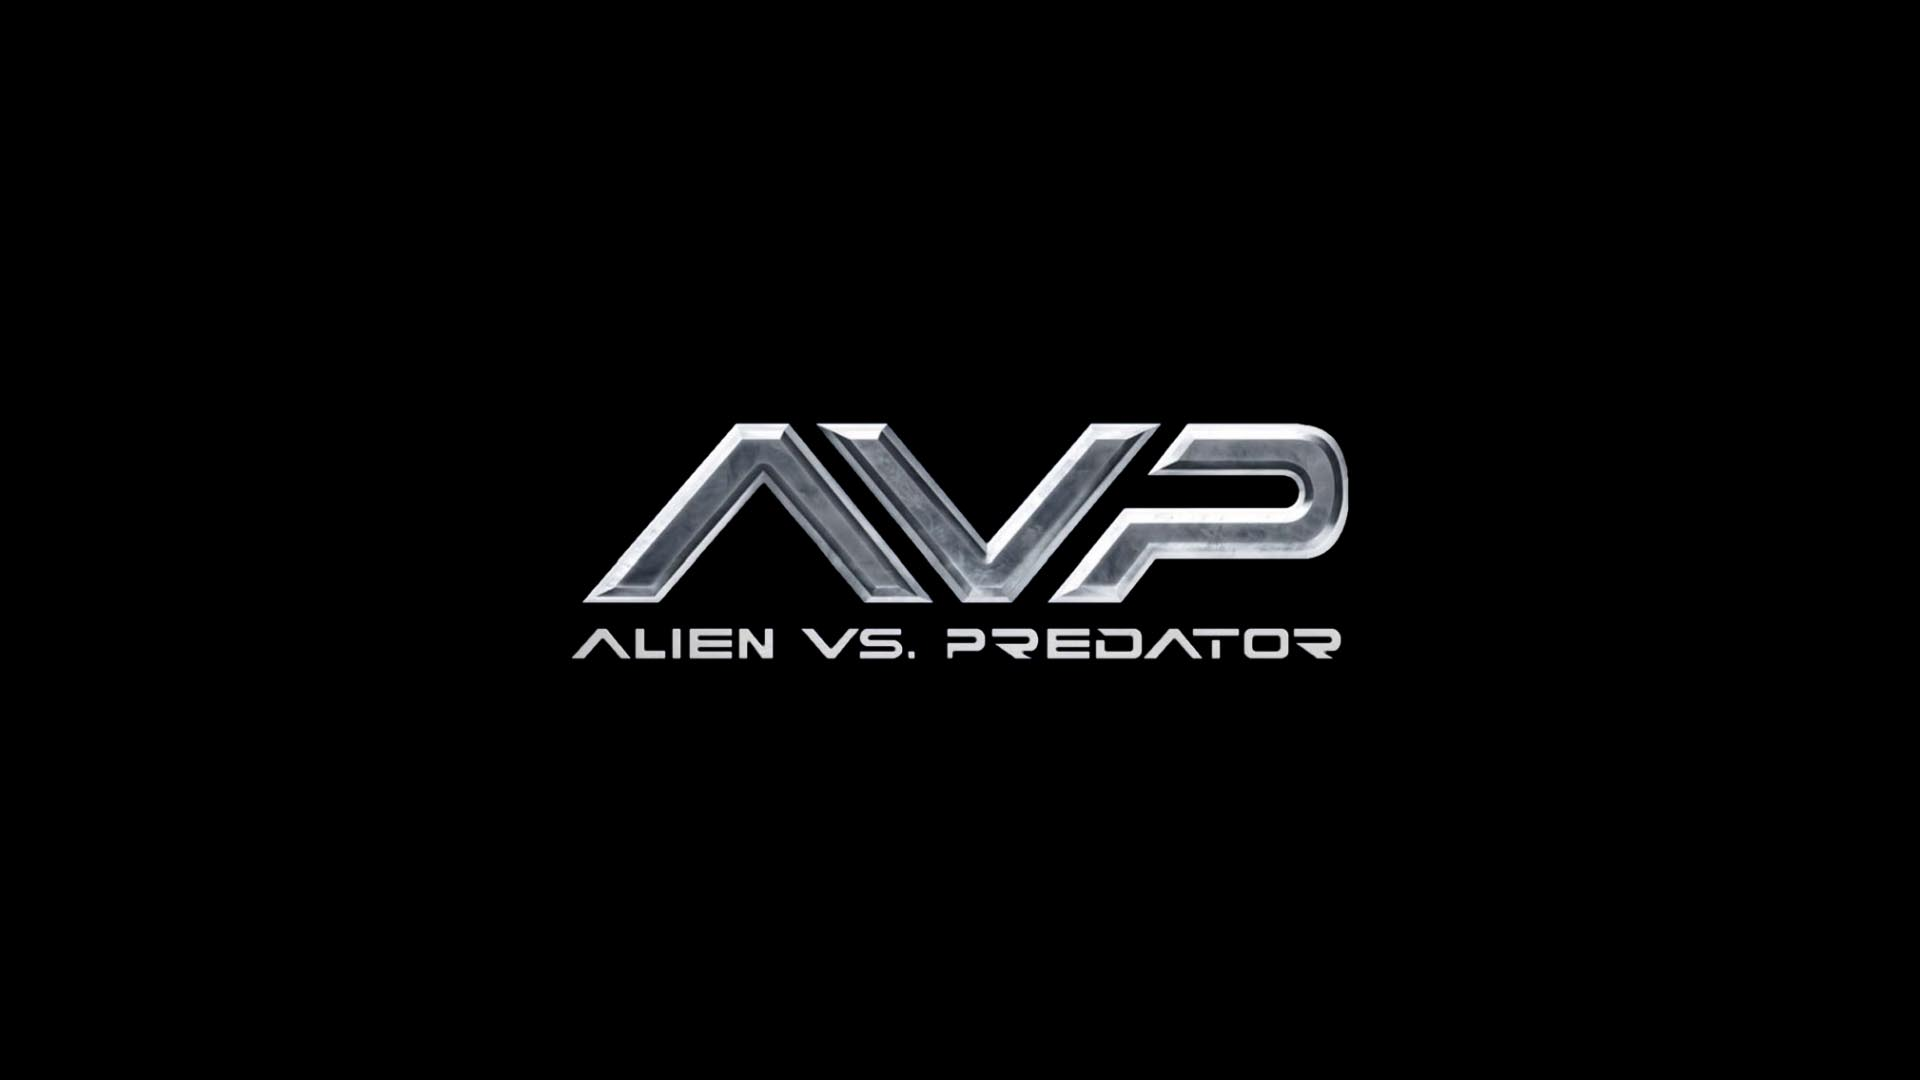 Avp Alien Vs Predator Logo Hd Wallpaper